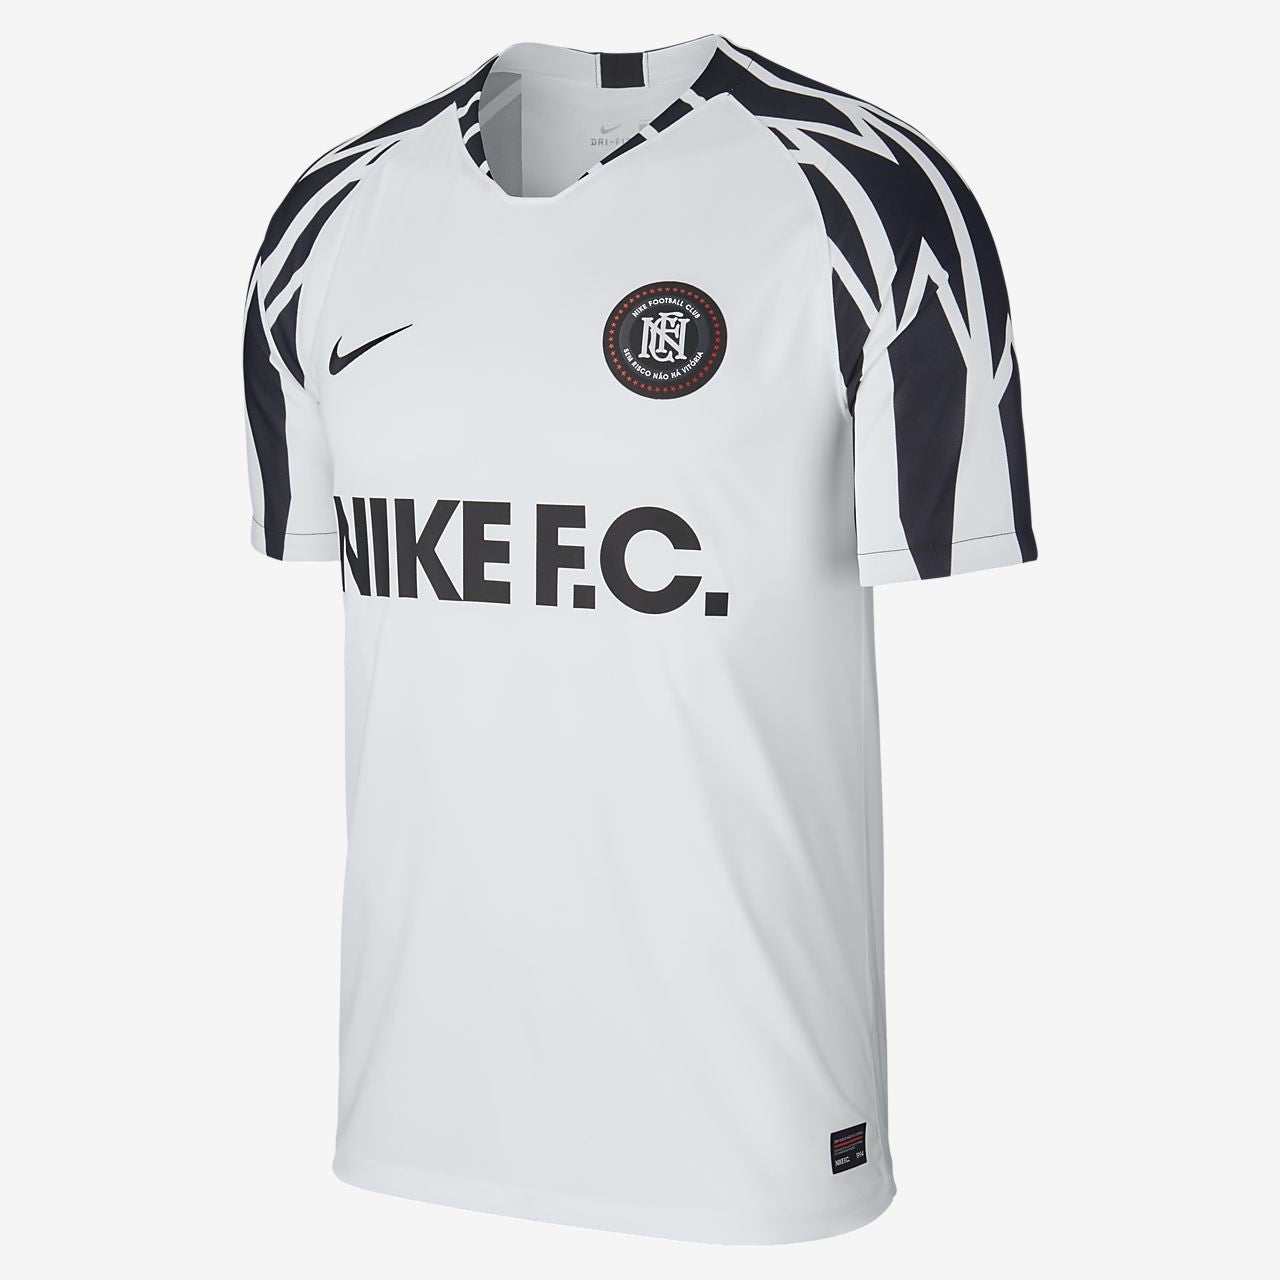 Men's Nike F.C. Home Football Shirt - White